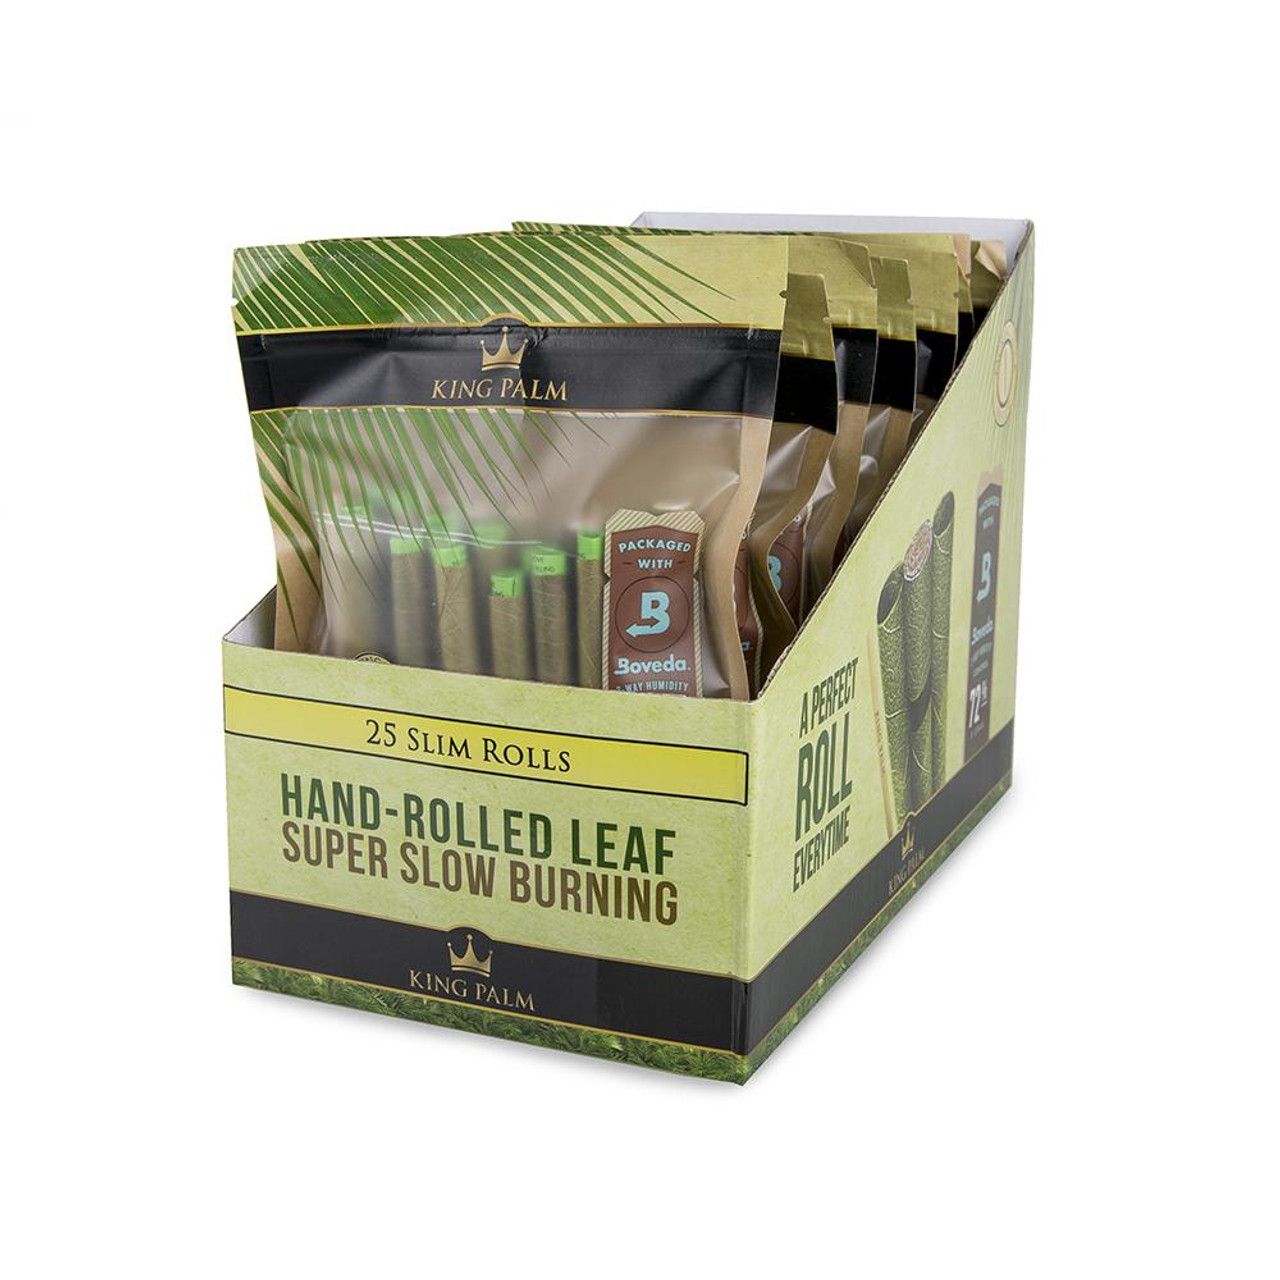 King Palm 25 Slim Rolls Pouch - Display of 8